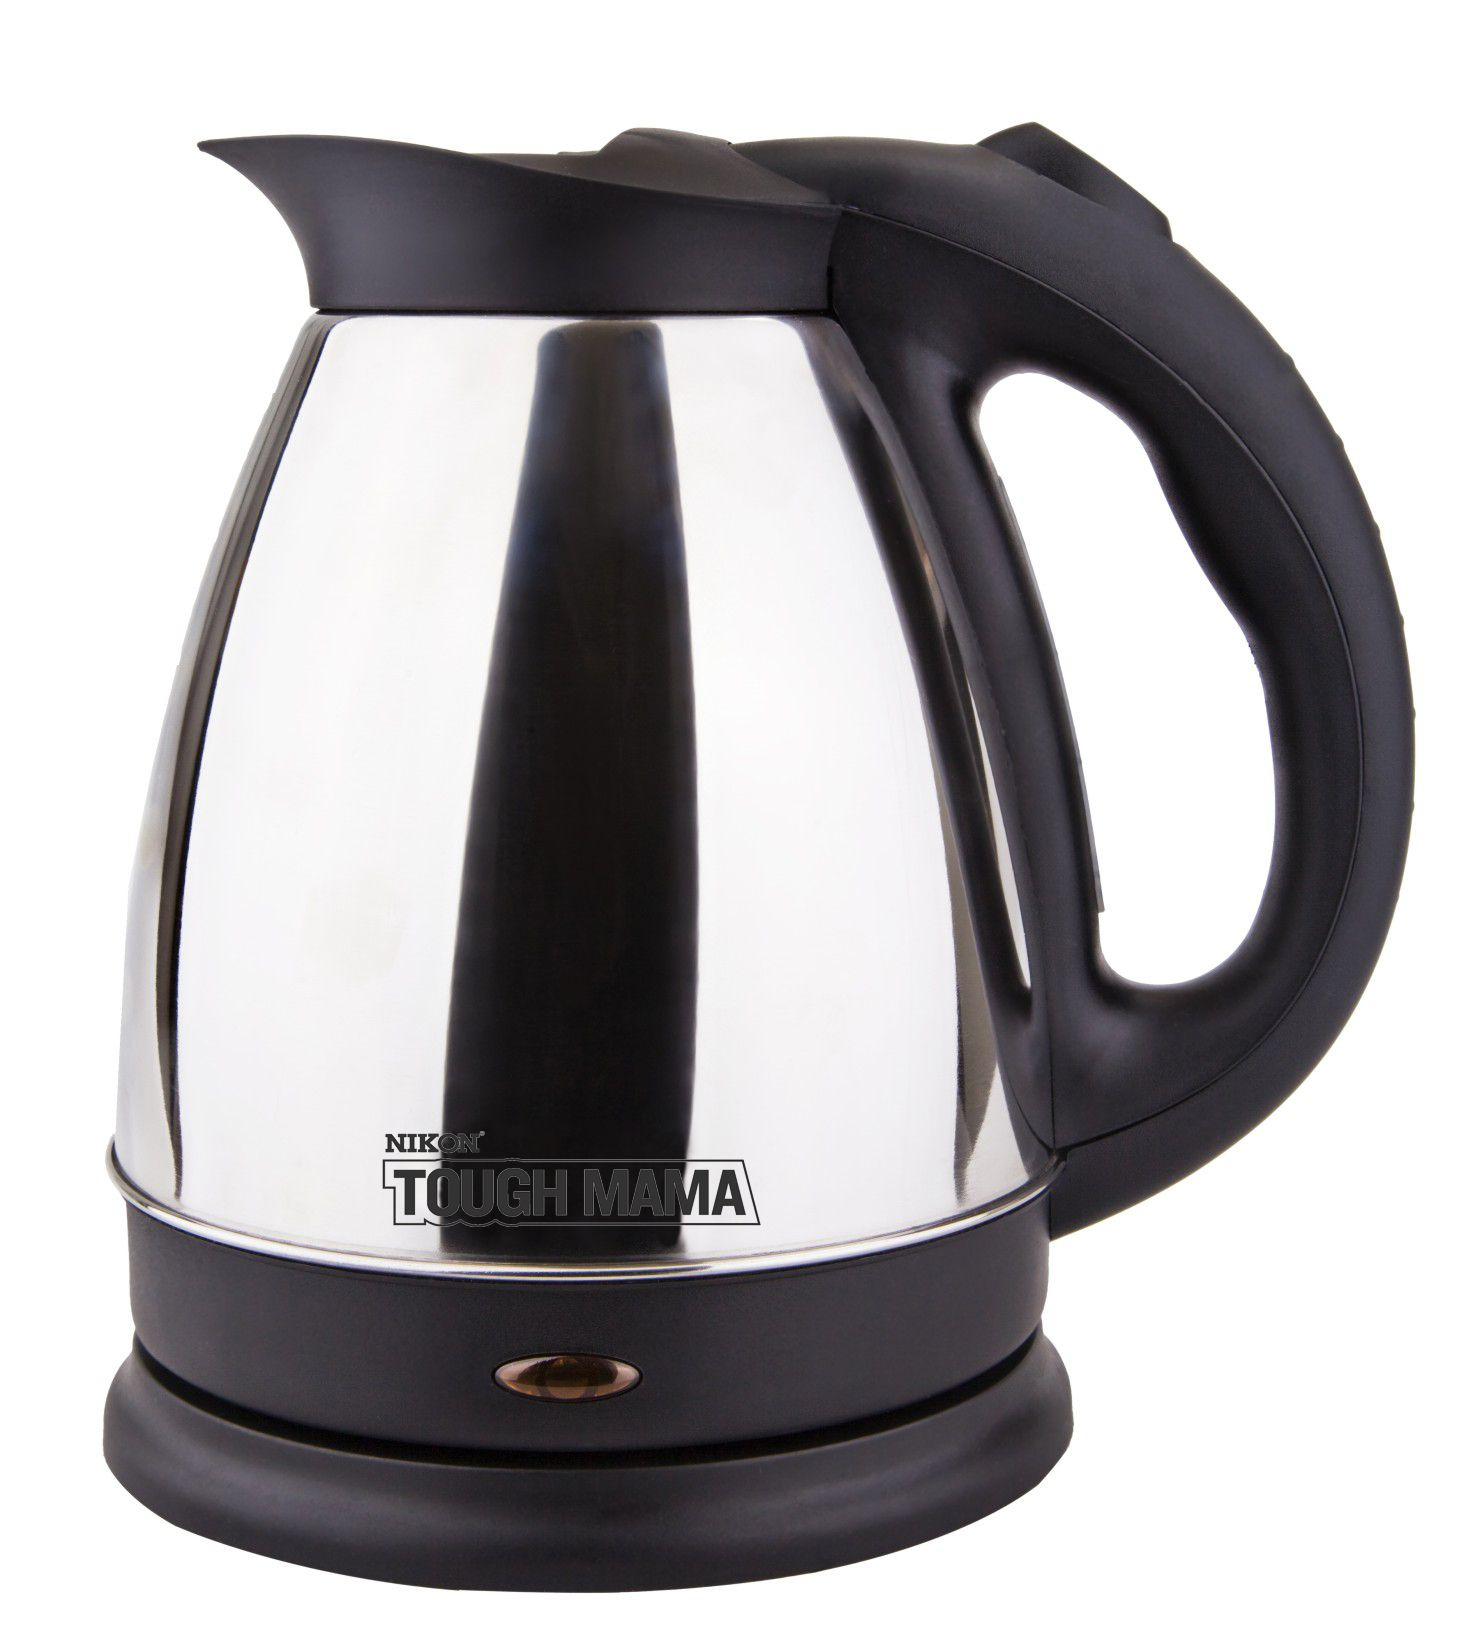 NTMJK15-1SS Tough Mama 1.5 L Stainless Steel Kettle